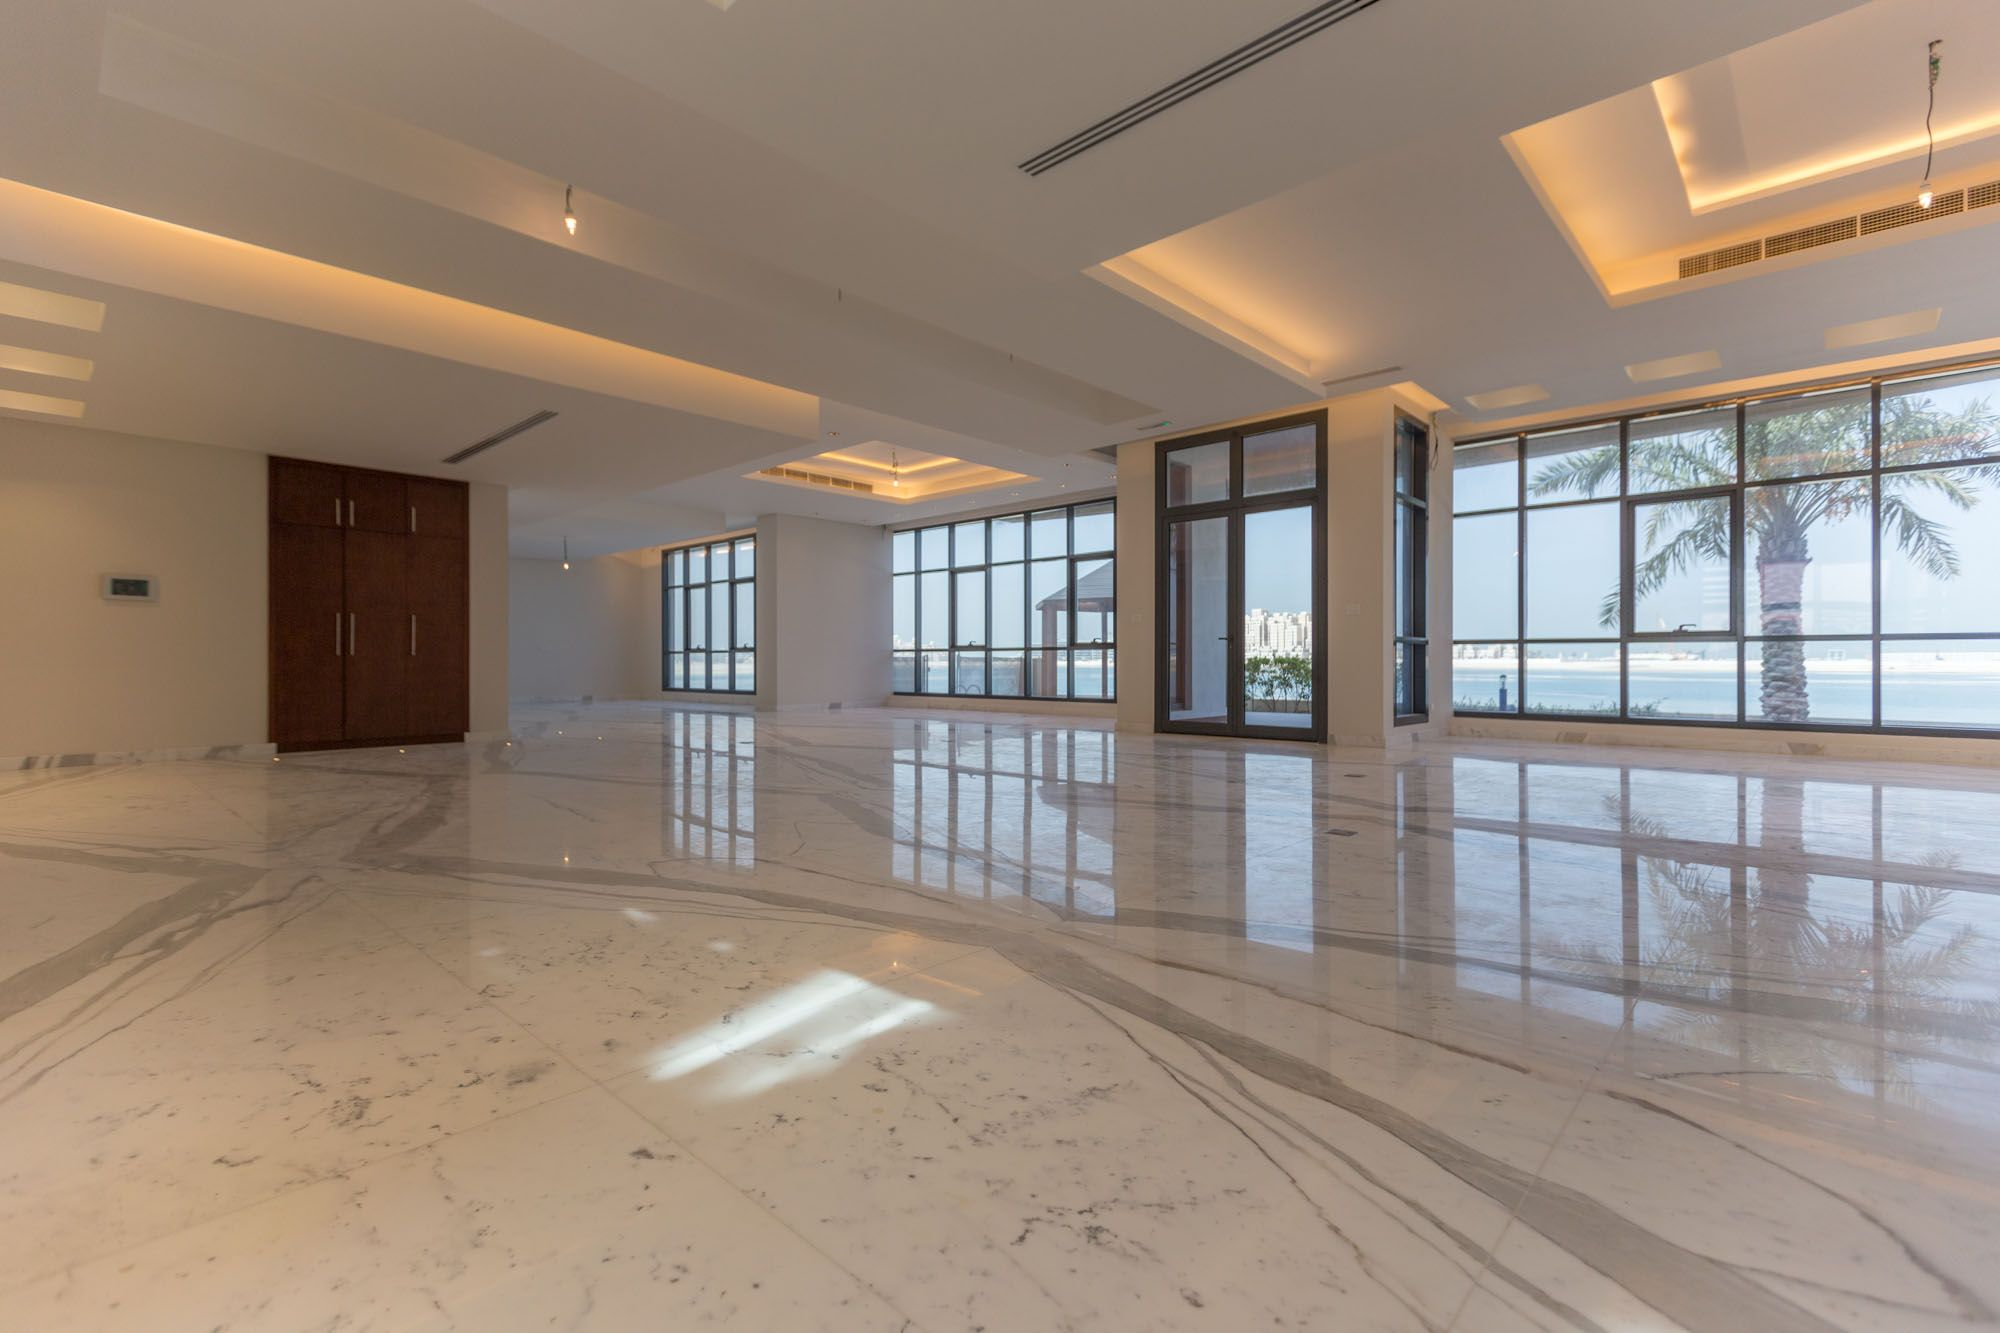 7 Bed Tip Villa Custom Made Italian Palm Jumeirah